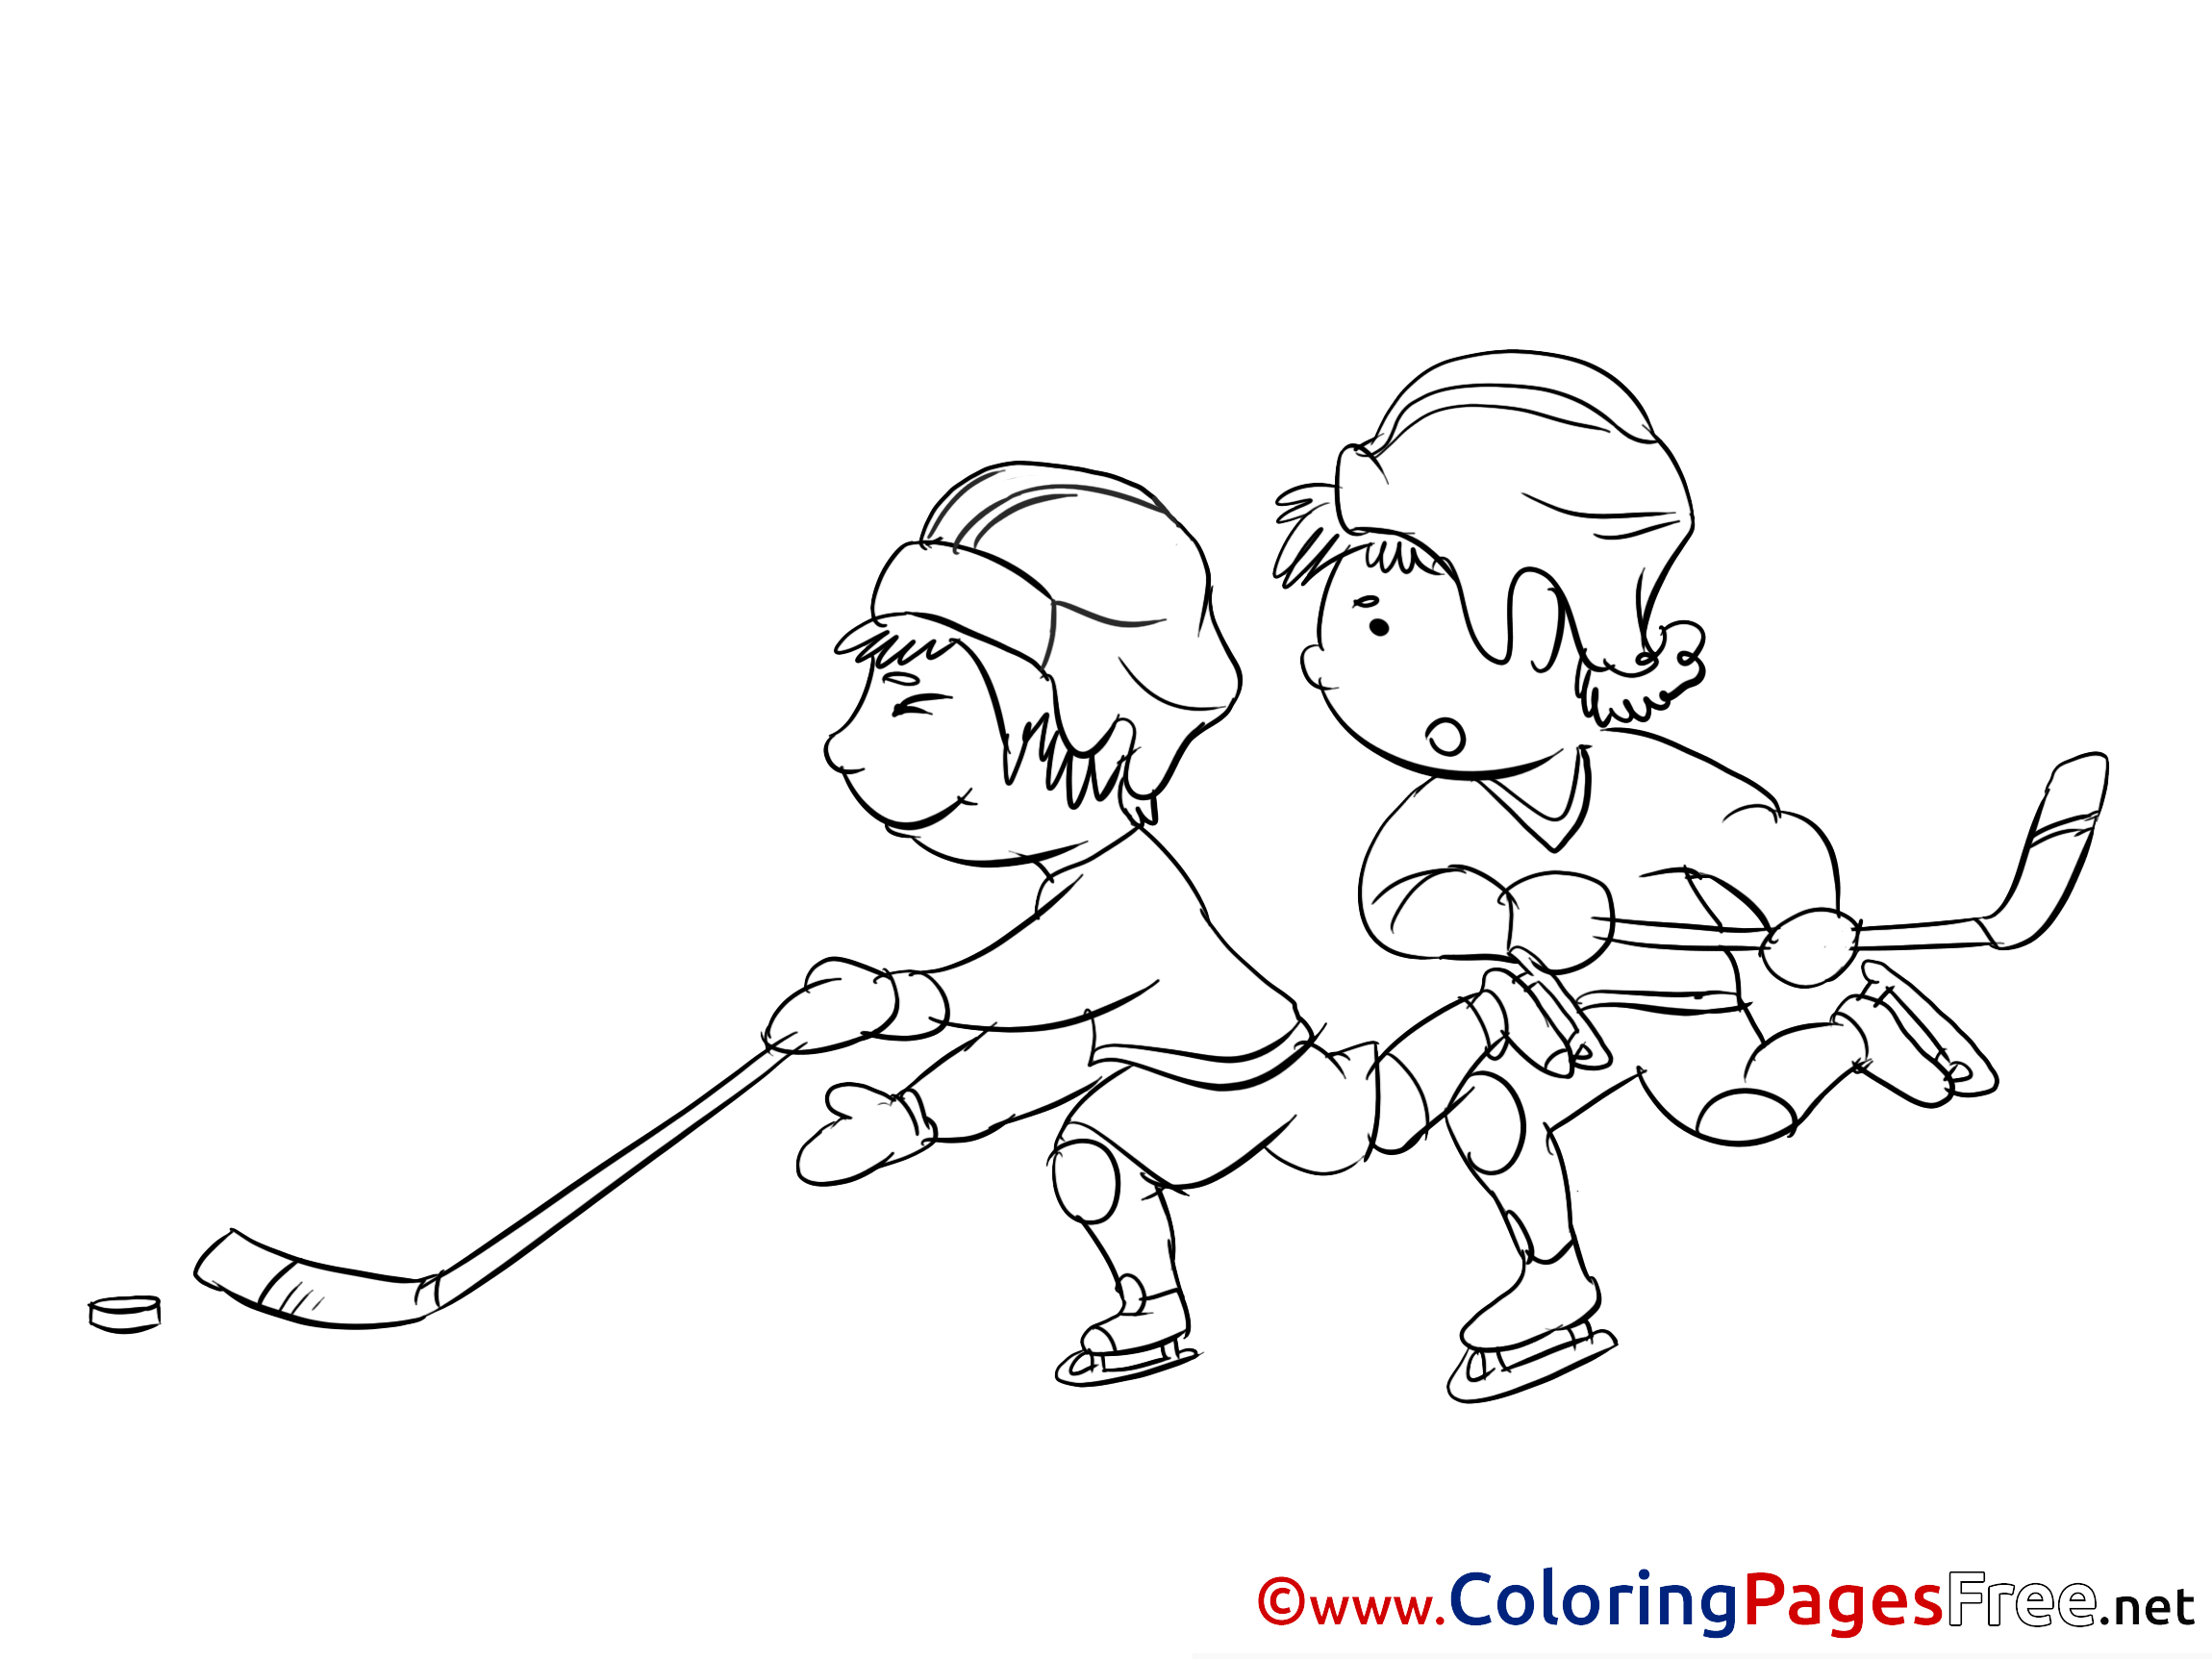 Coloring Pages Of Hockey Players - Coloring Home | 1725x2300